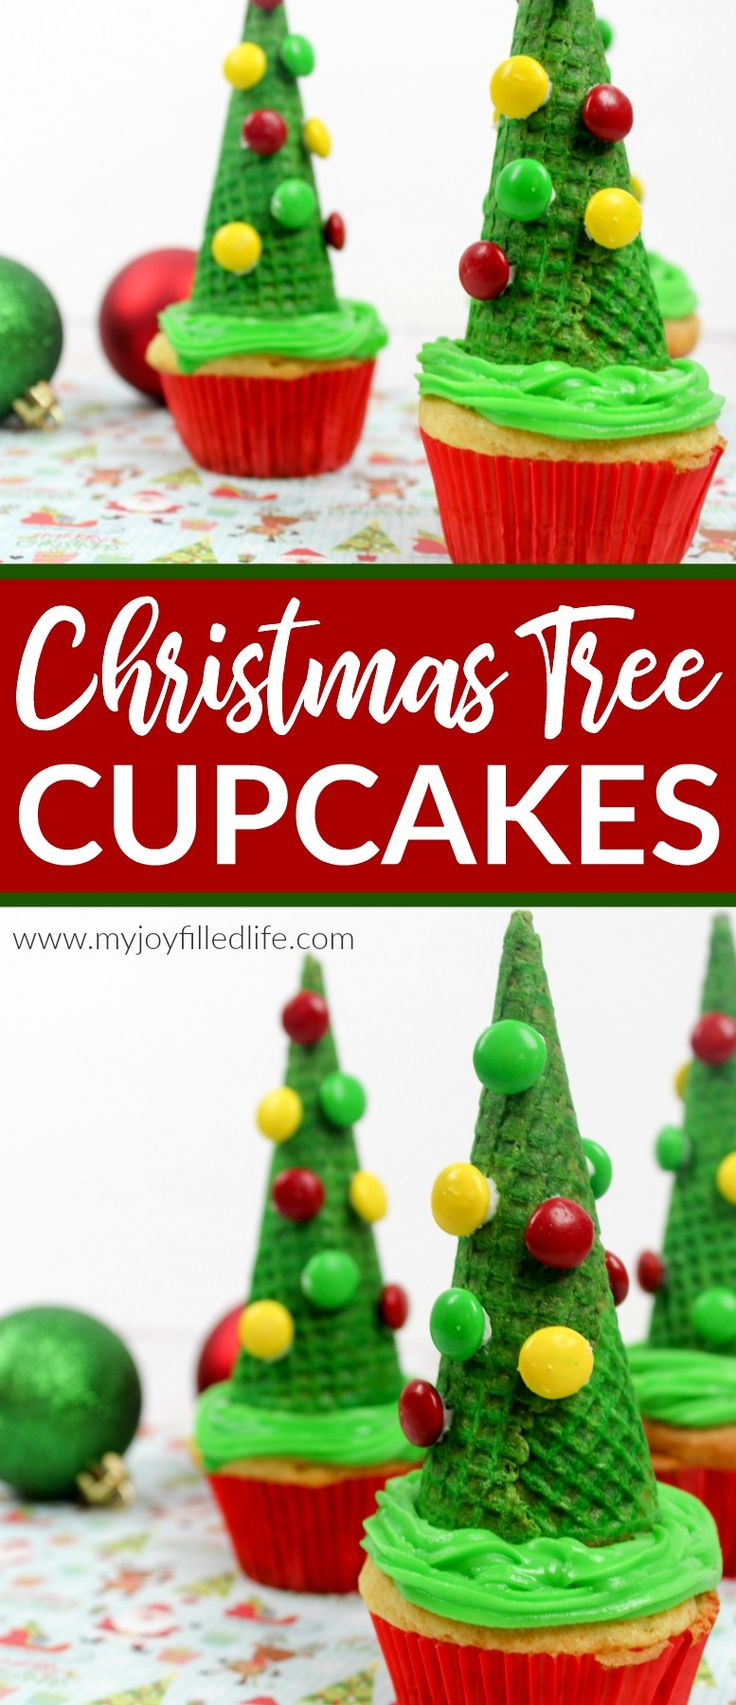 A fun and easy to make Christmas treat that will impress your guests - Christmas Tree Cupcakes #cupcakes #Christmastreat #recipe